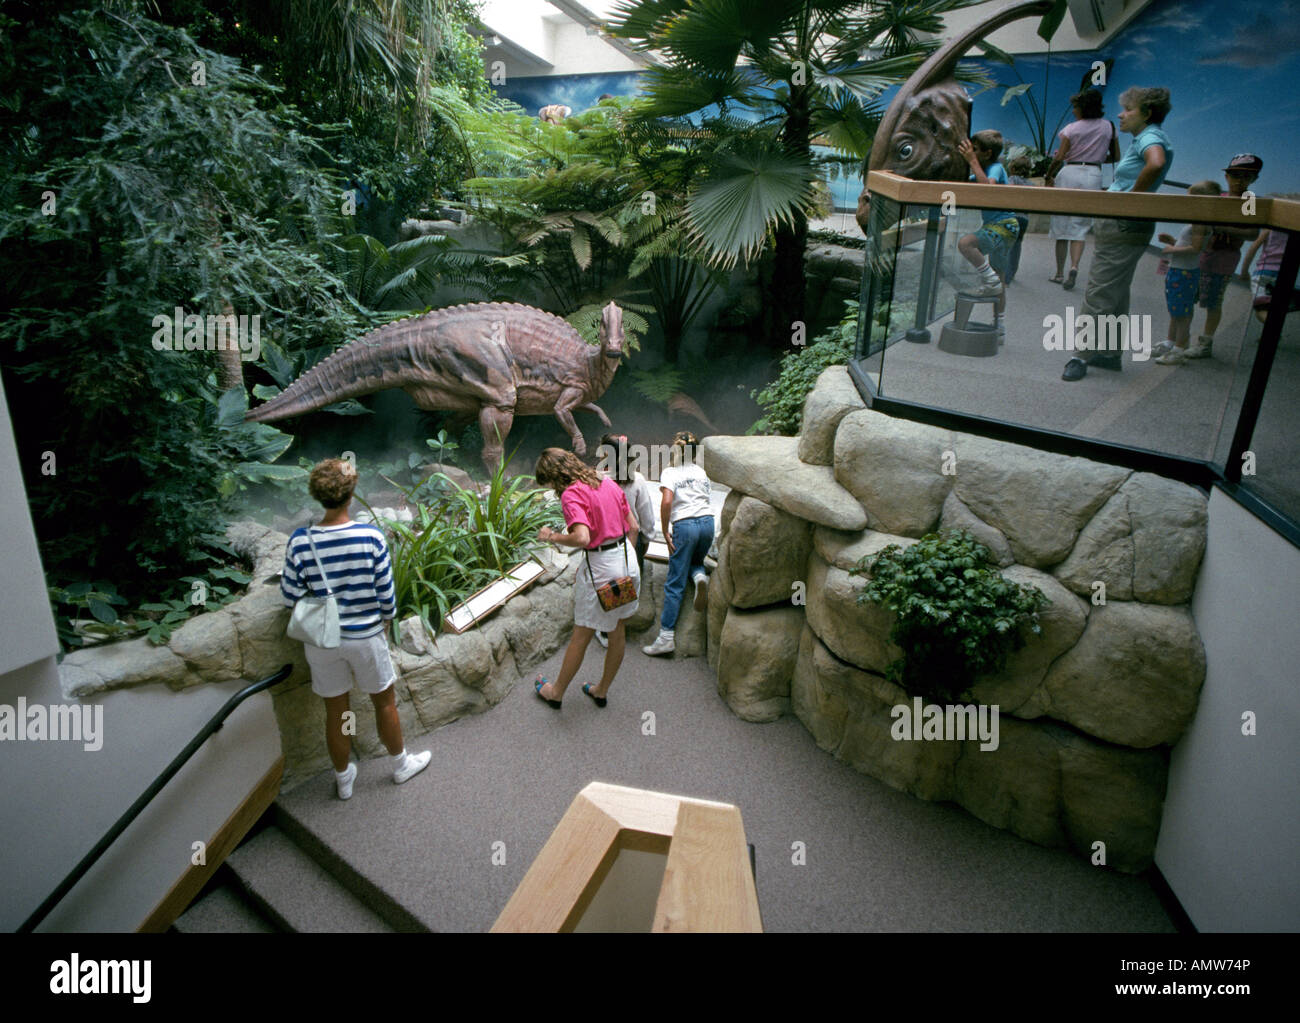 USA NEW MEXICO ALBUQUERQUE Dinosaurs on display at the Museum of Natural History and Science in Albuquerque - Stock Image